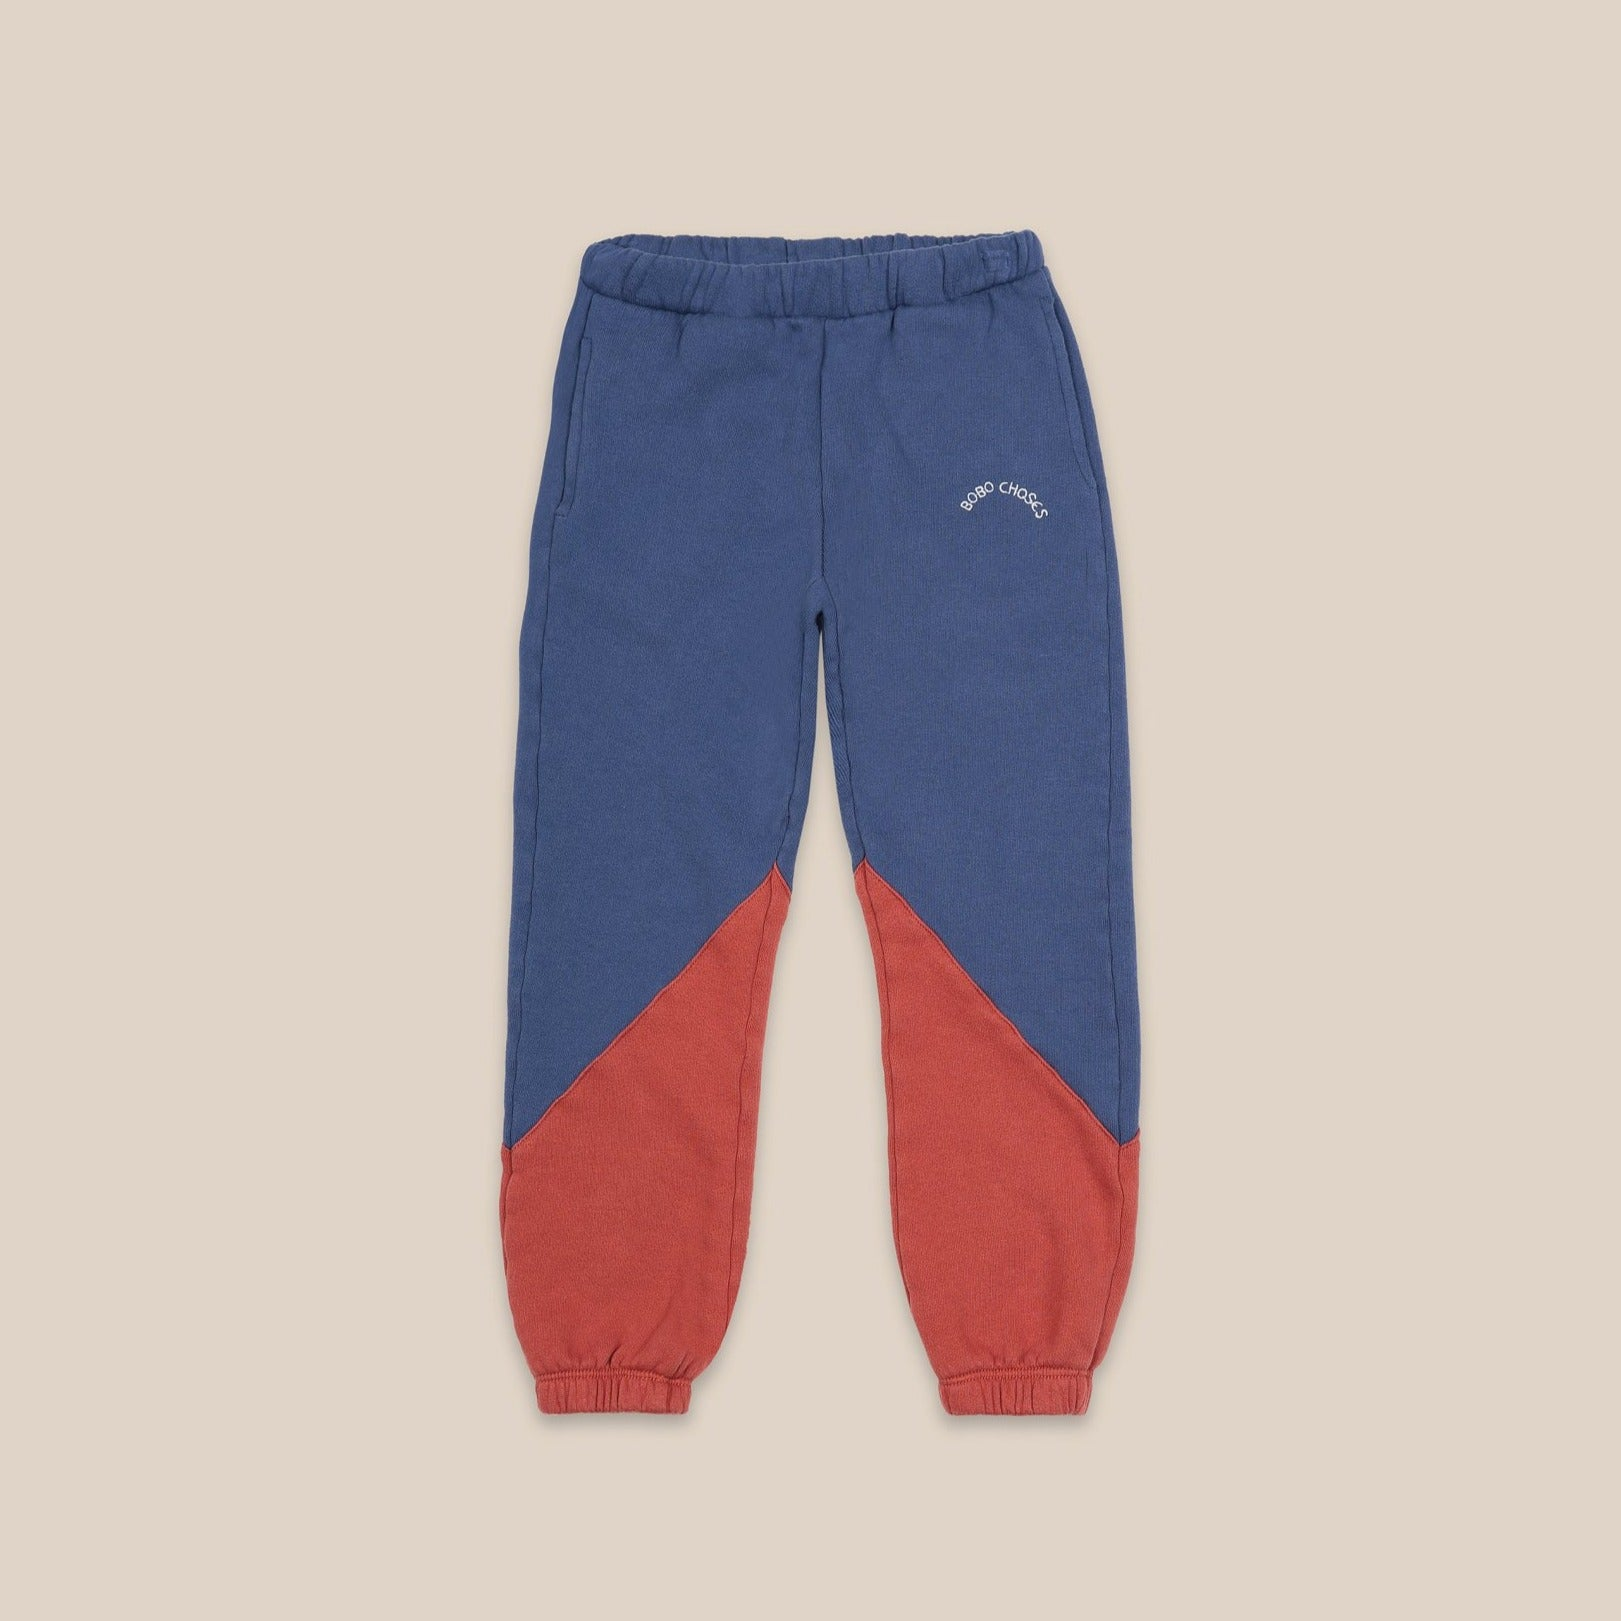 Bobo Choses color block jogging housut, atlantic deep